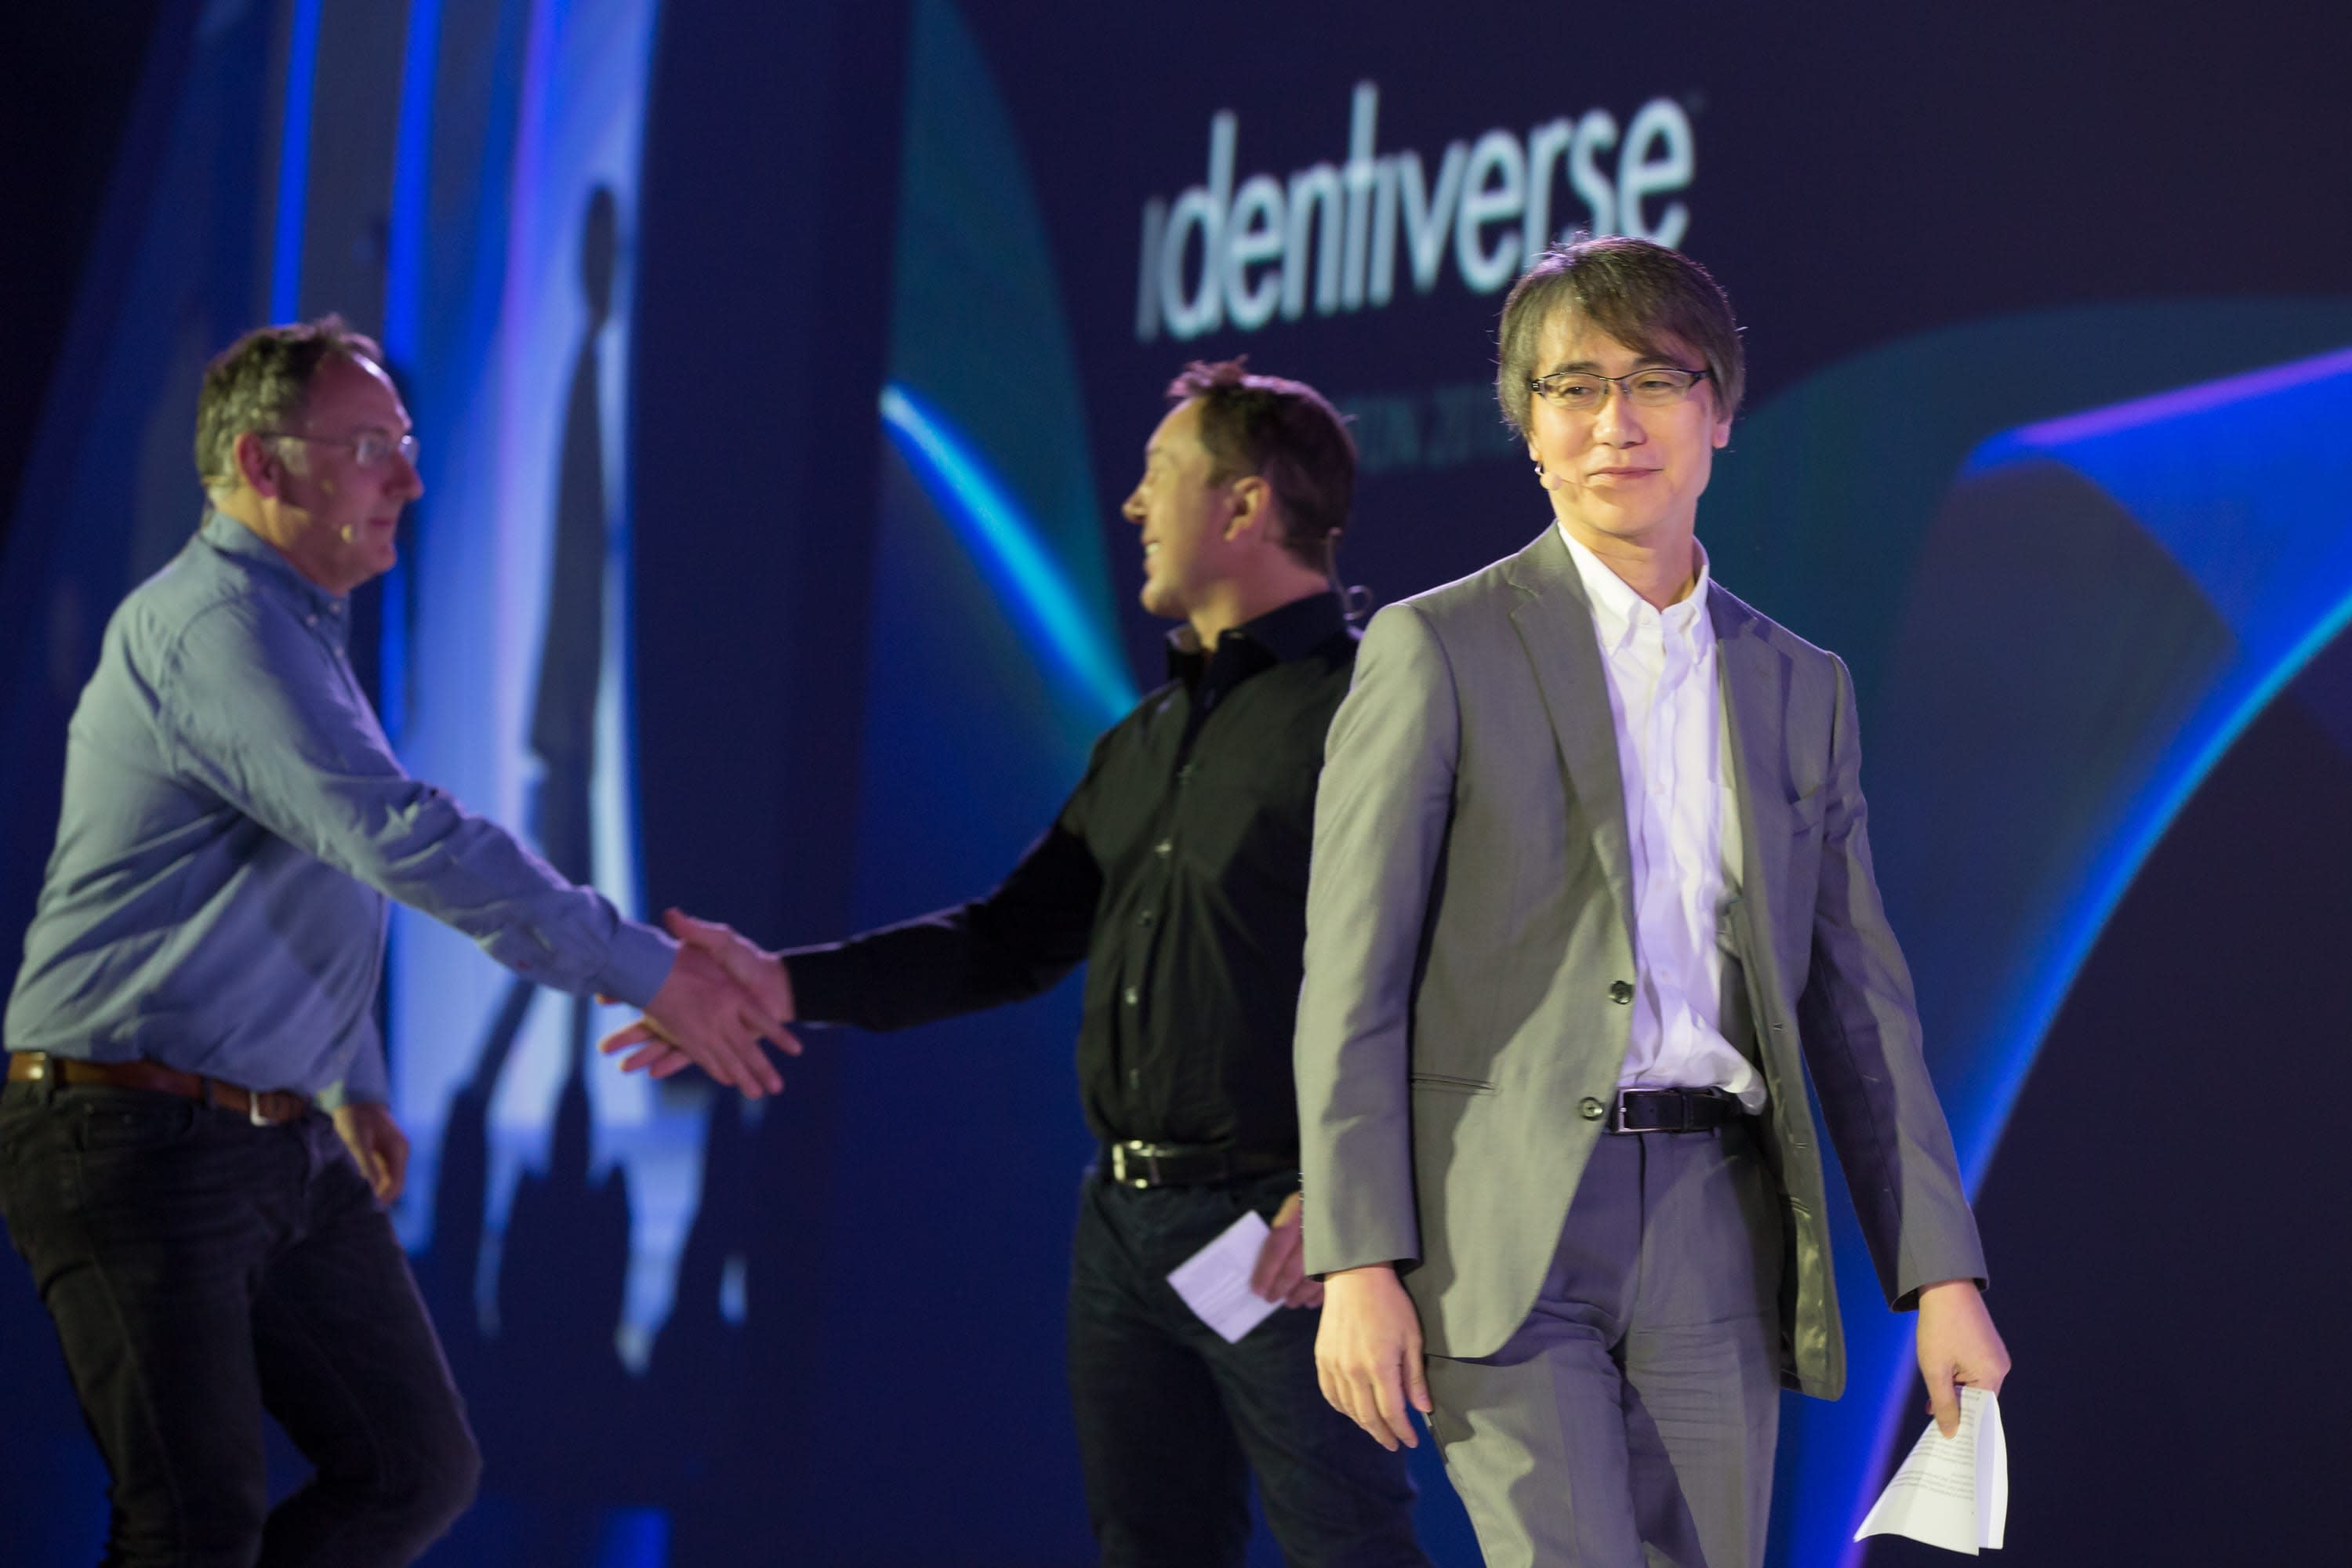 Nat Sakimura, co-chair of the FAPI WG, after accepting an industry award for related work at 2018 Identiverse.